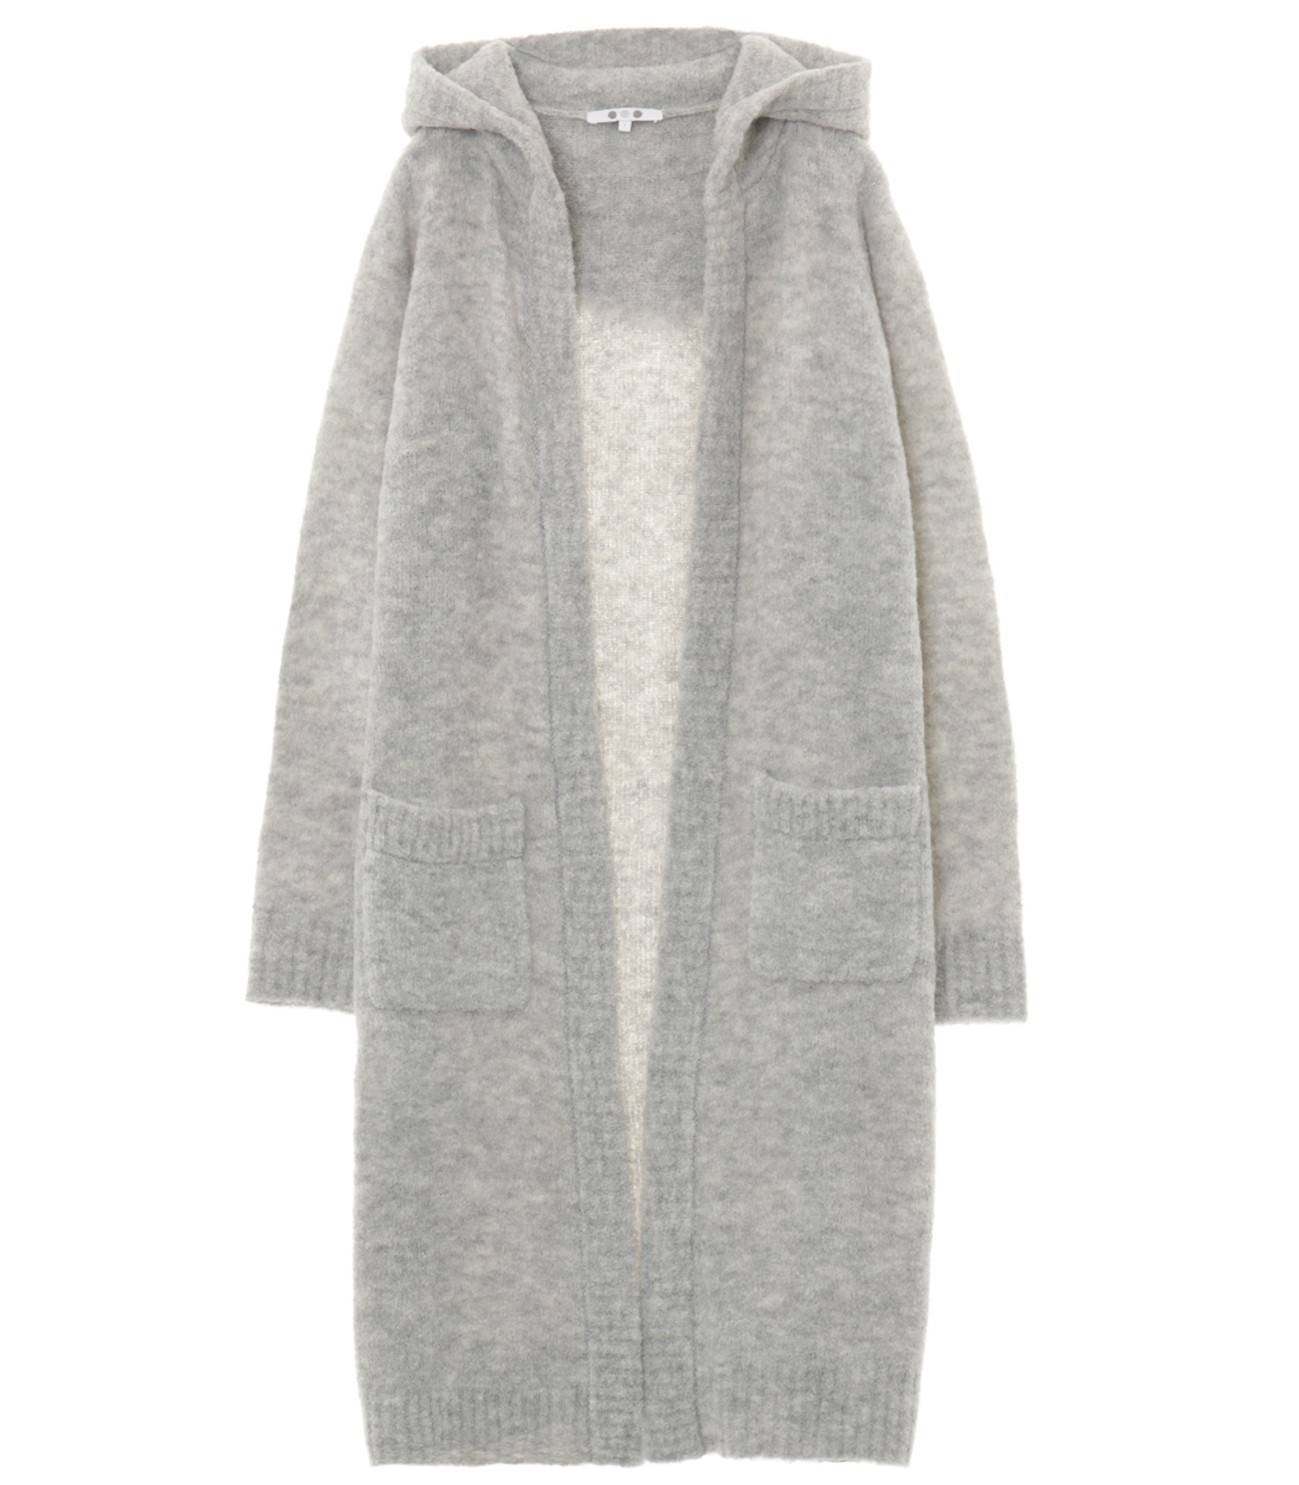 alpaca mixed boucle long cardy 詳細画像 grey 1